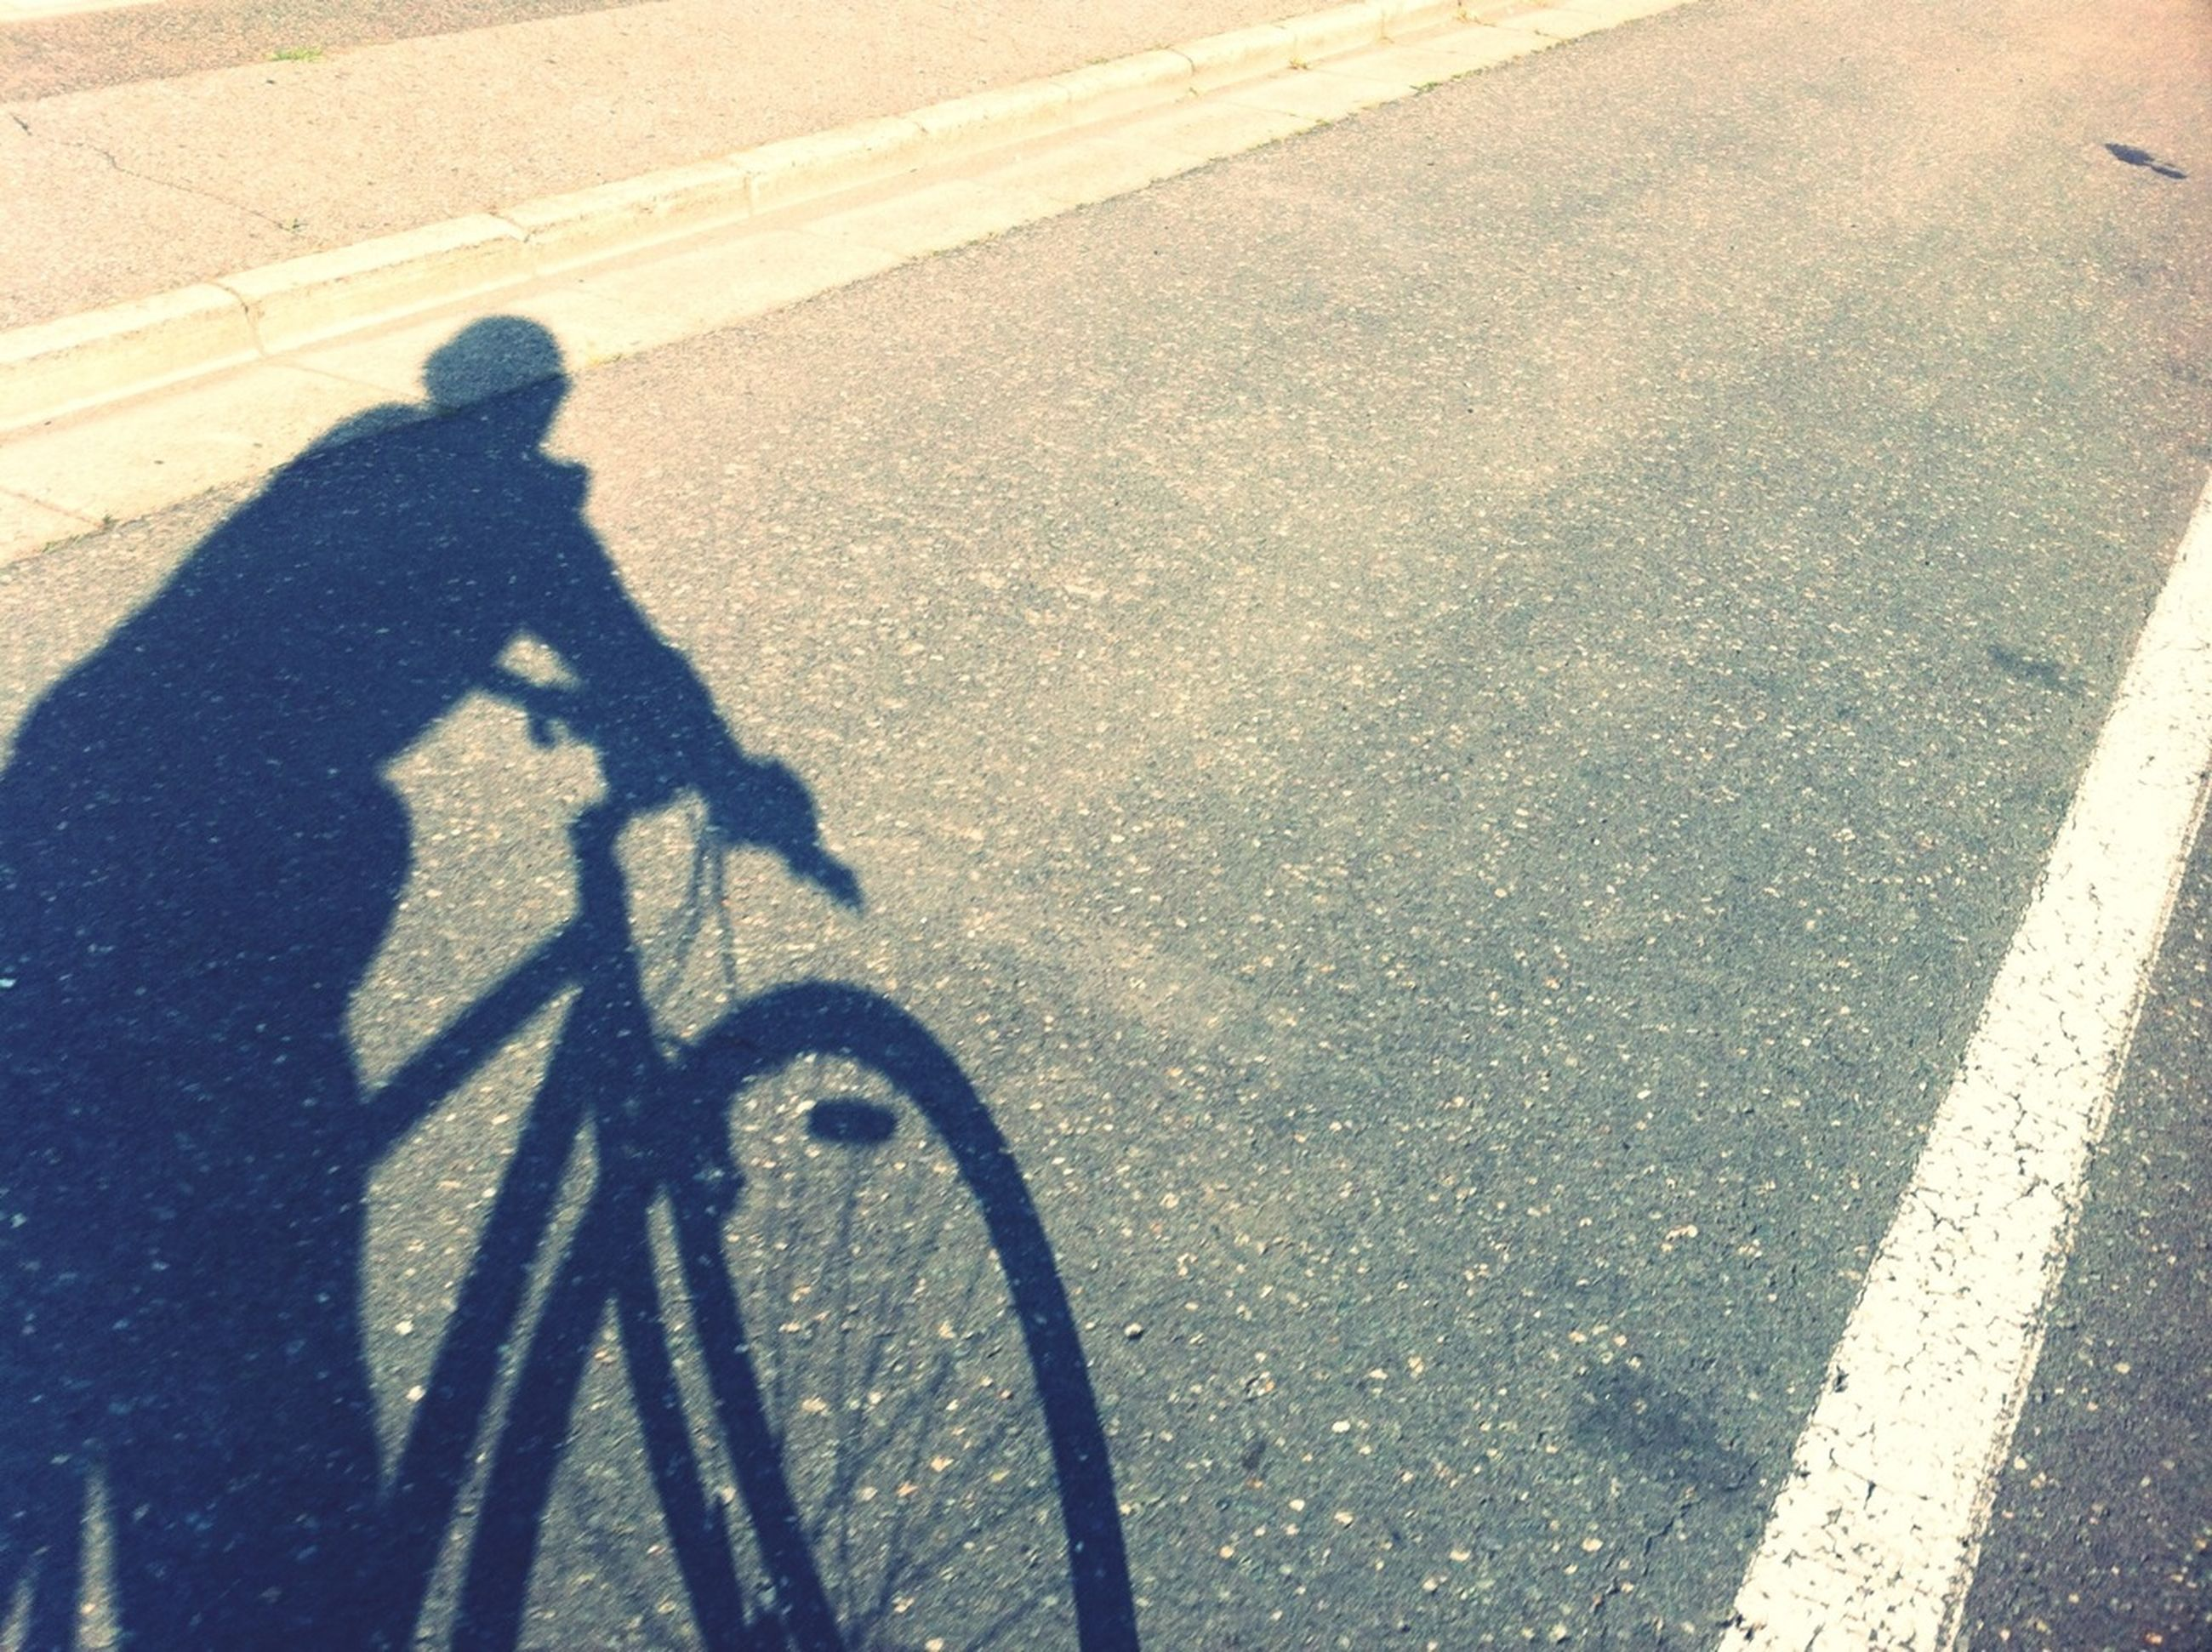 transportation, street, road marking, road, shadow, high angle view, bicycle, asphalt, lifestyles, sunlight, leisure activity, men, focus on shadow, land vehicle, cycling, mode of transport, unrecognizable person, outdoors